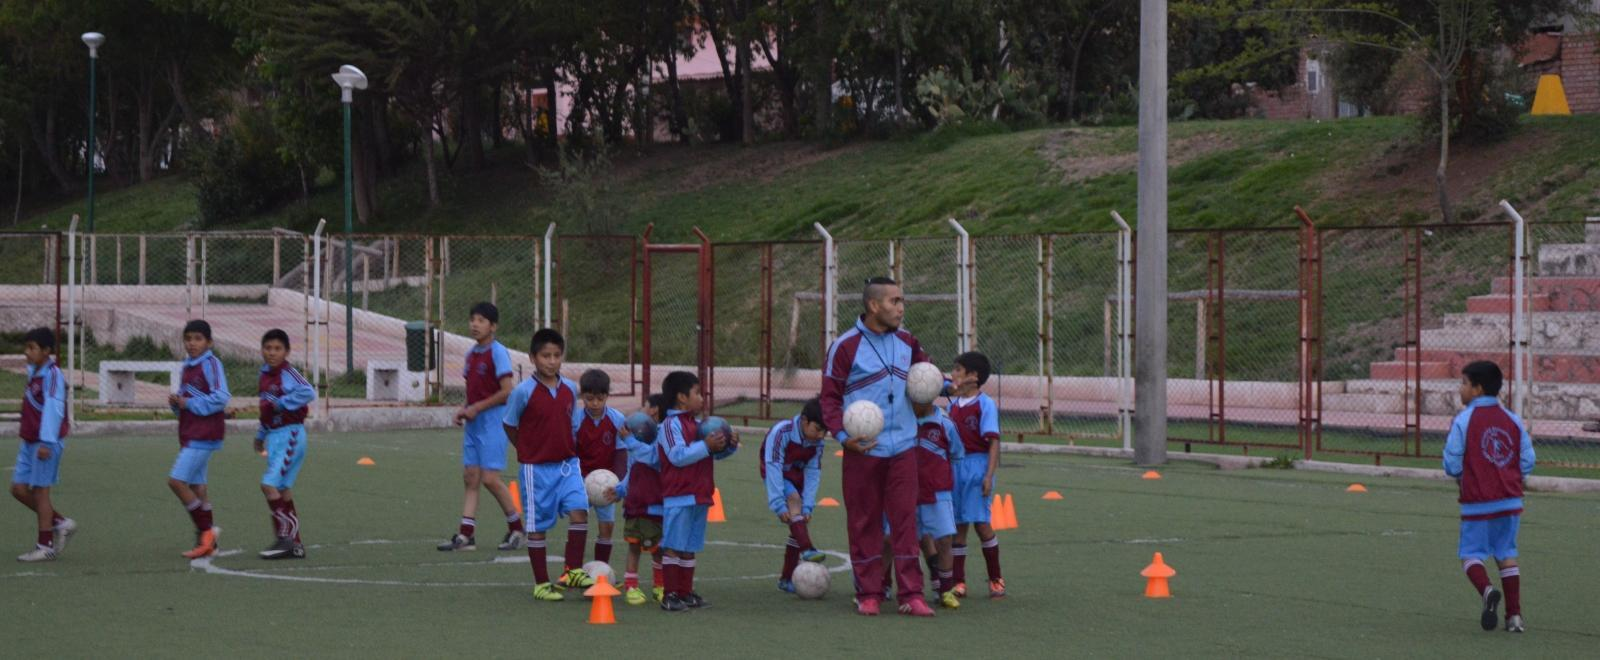 A football lesson forming part of our volunteer sports coaching in schools in Peru